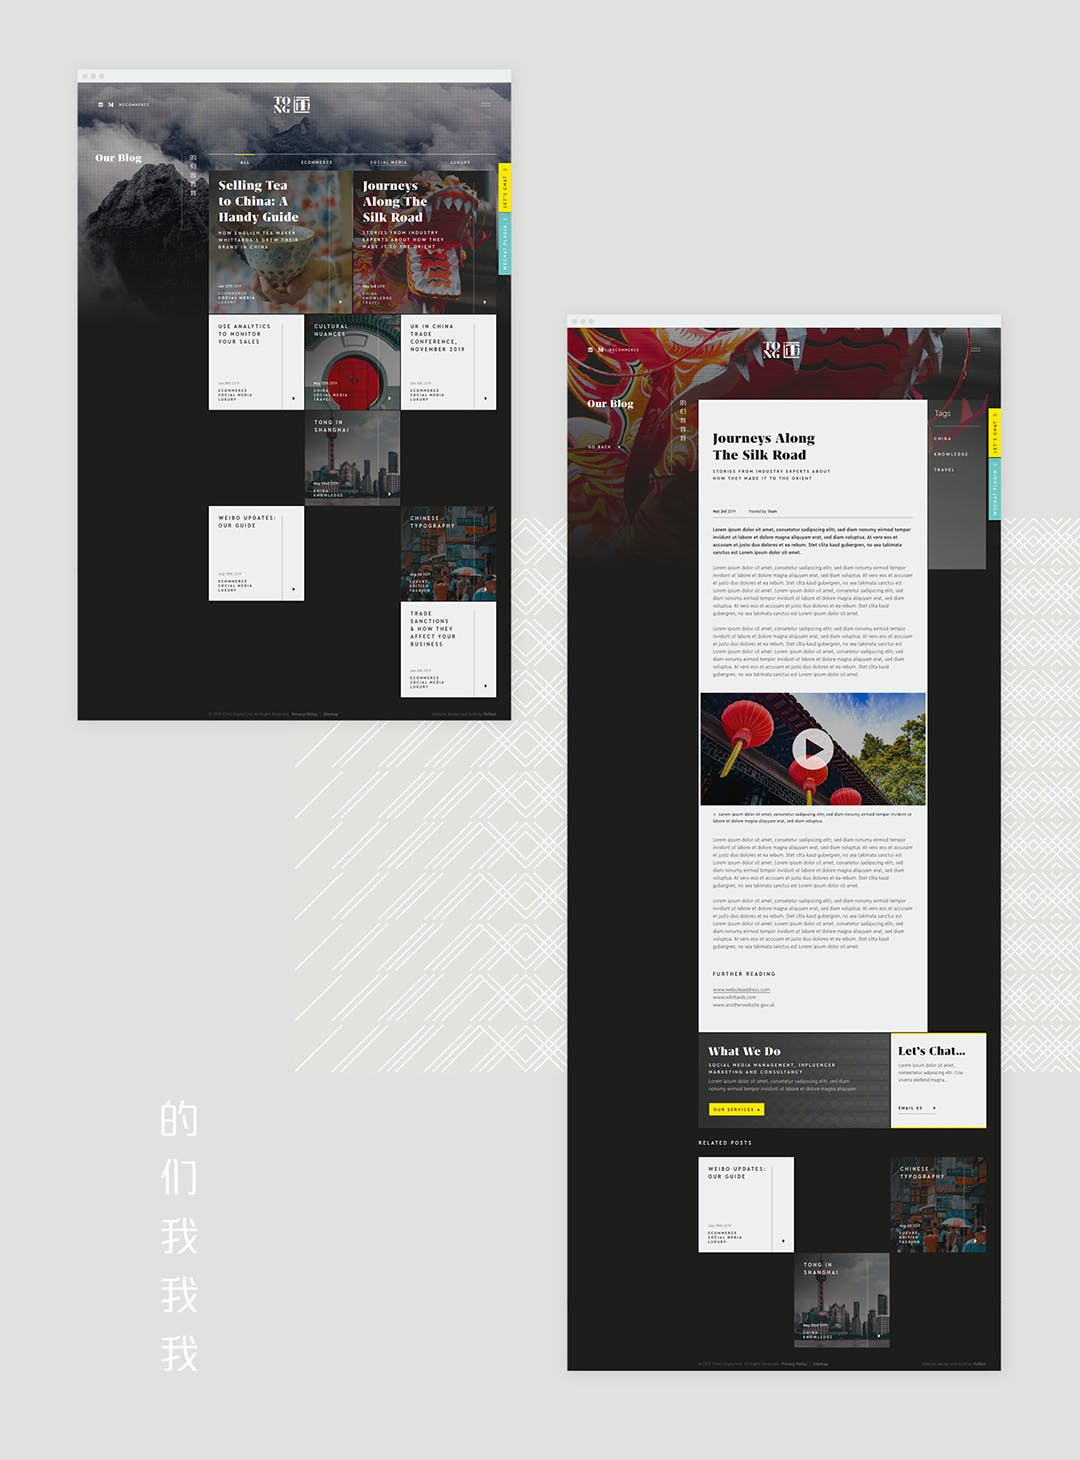 TONG website page design showcase